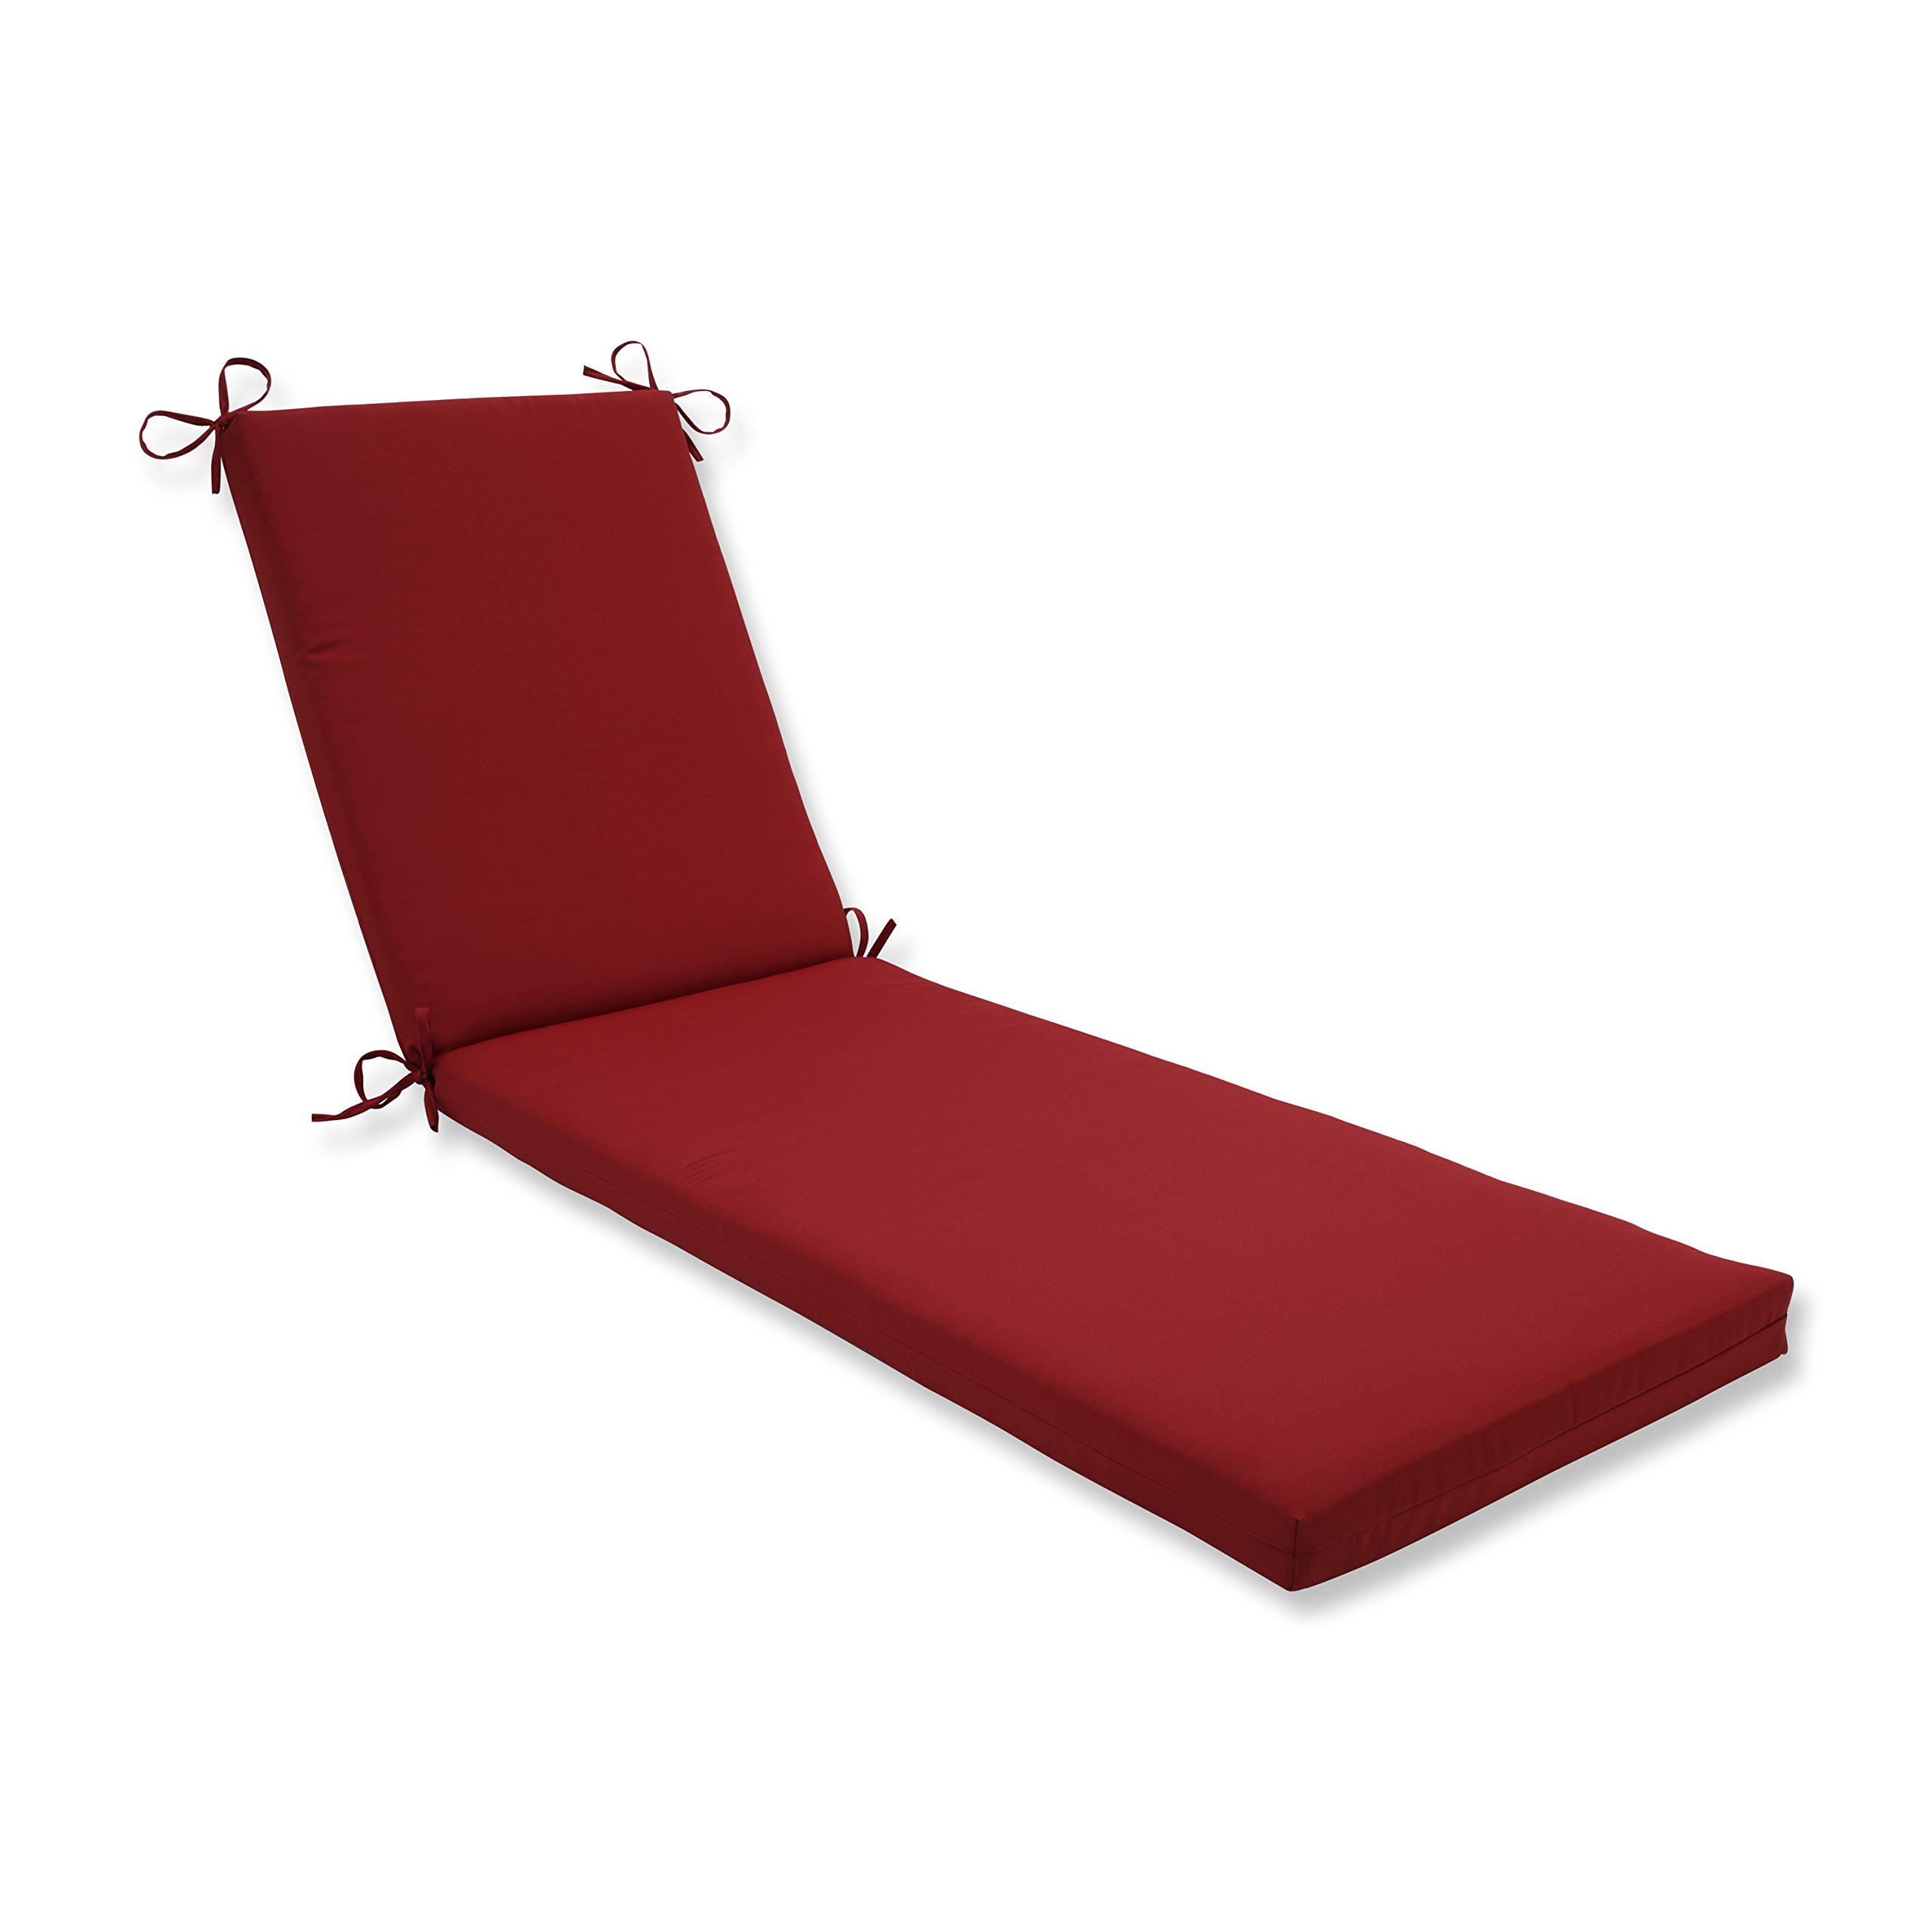 Pillow Perfect Outdoor/Indoor Pompeii Red Chaise Lounge Cushion 80x23x3